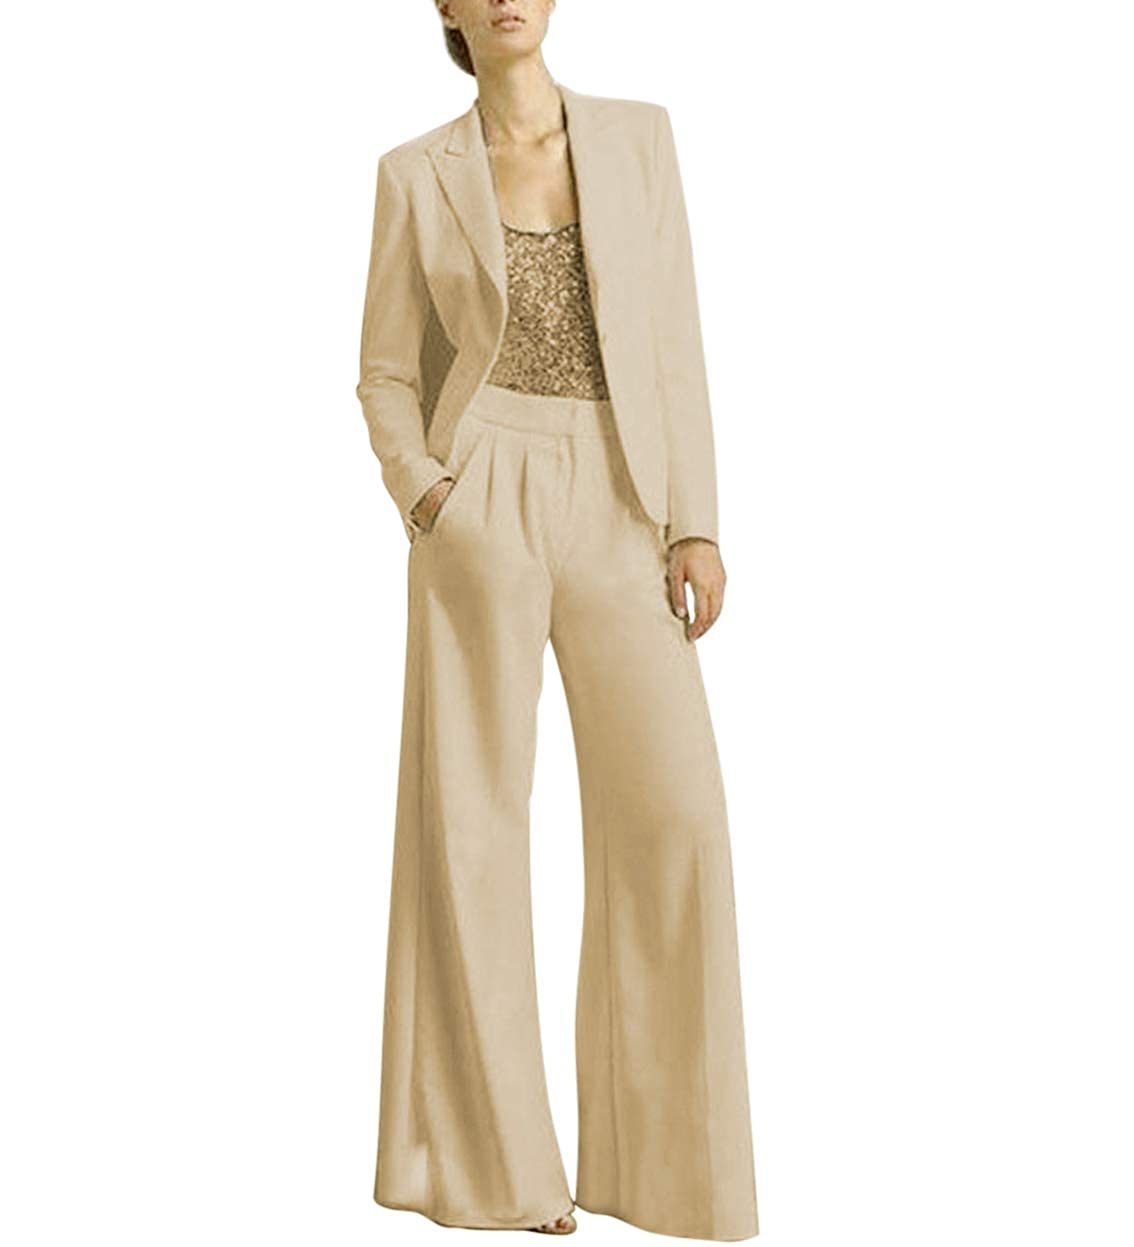 Champagne TBB Women's 2 Pieces Mother of The Bride Dress Pant Suits with Polyester Jacket Office Lady